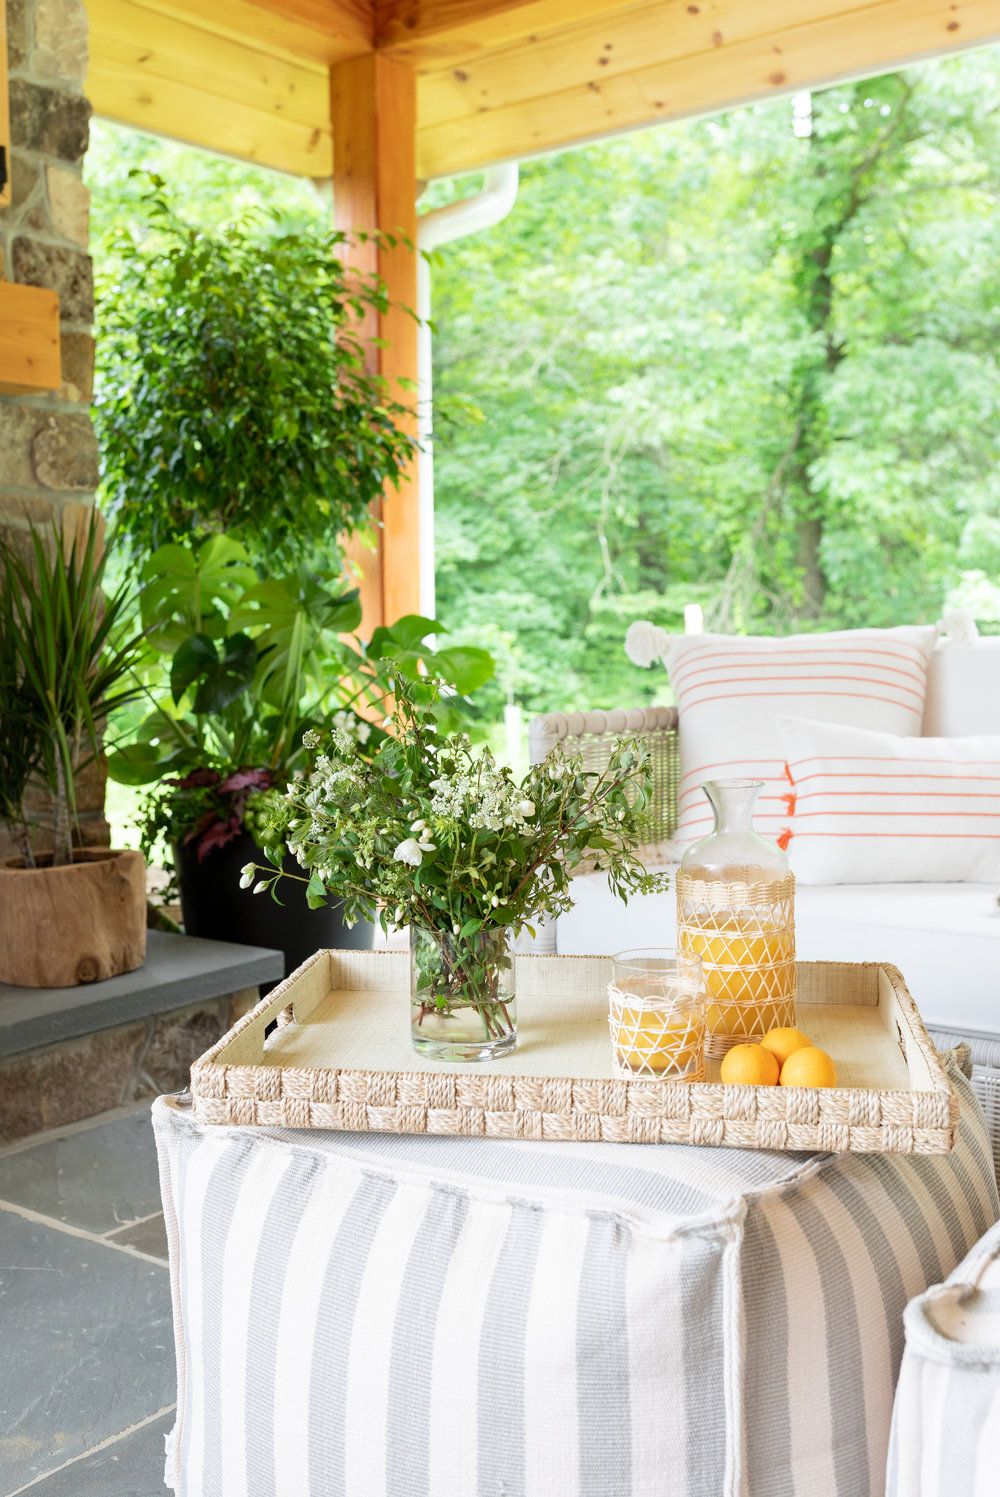 House Tour-  I Love This House's Modern Twist on Classic Traditional Style 15.jpeg